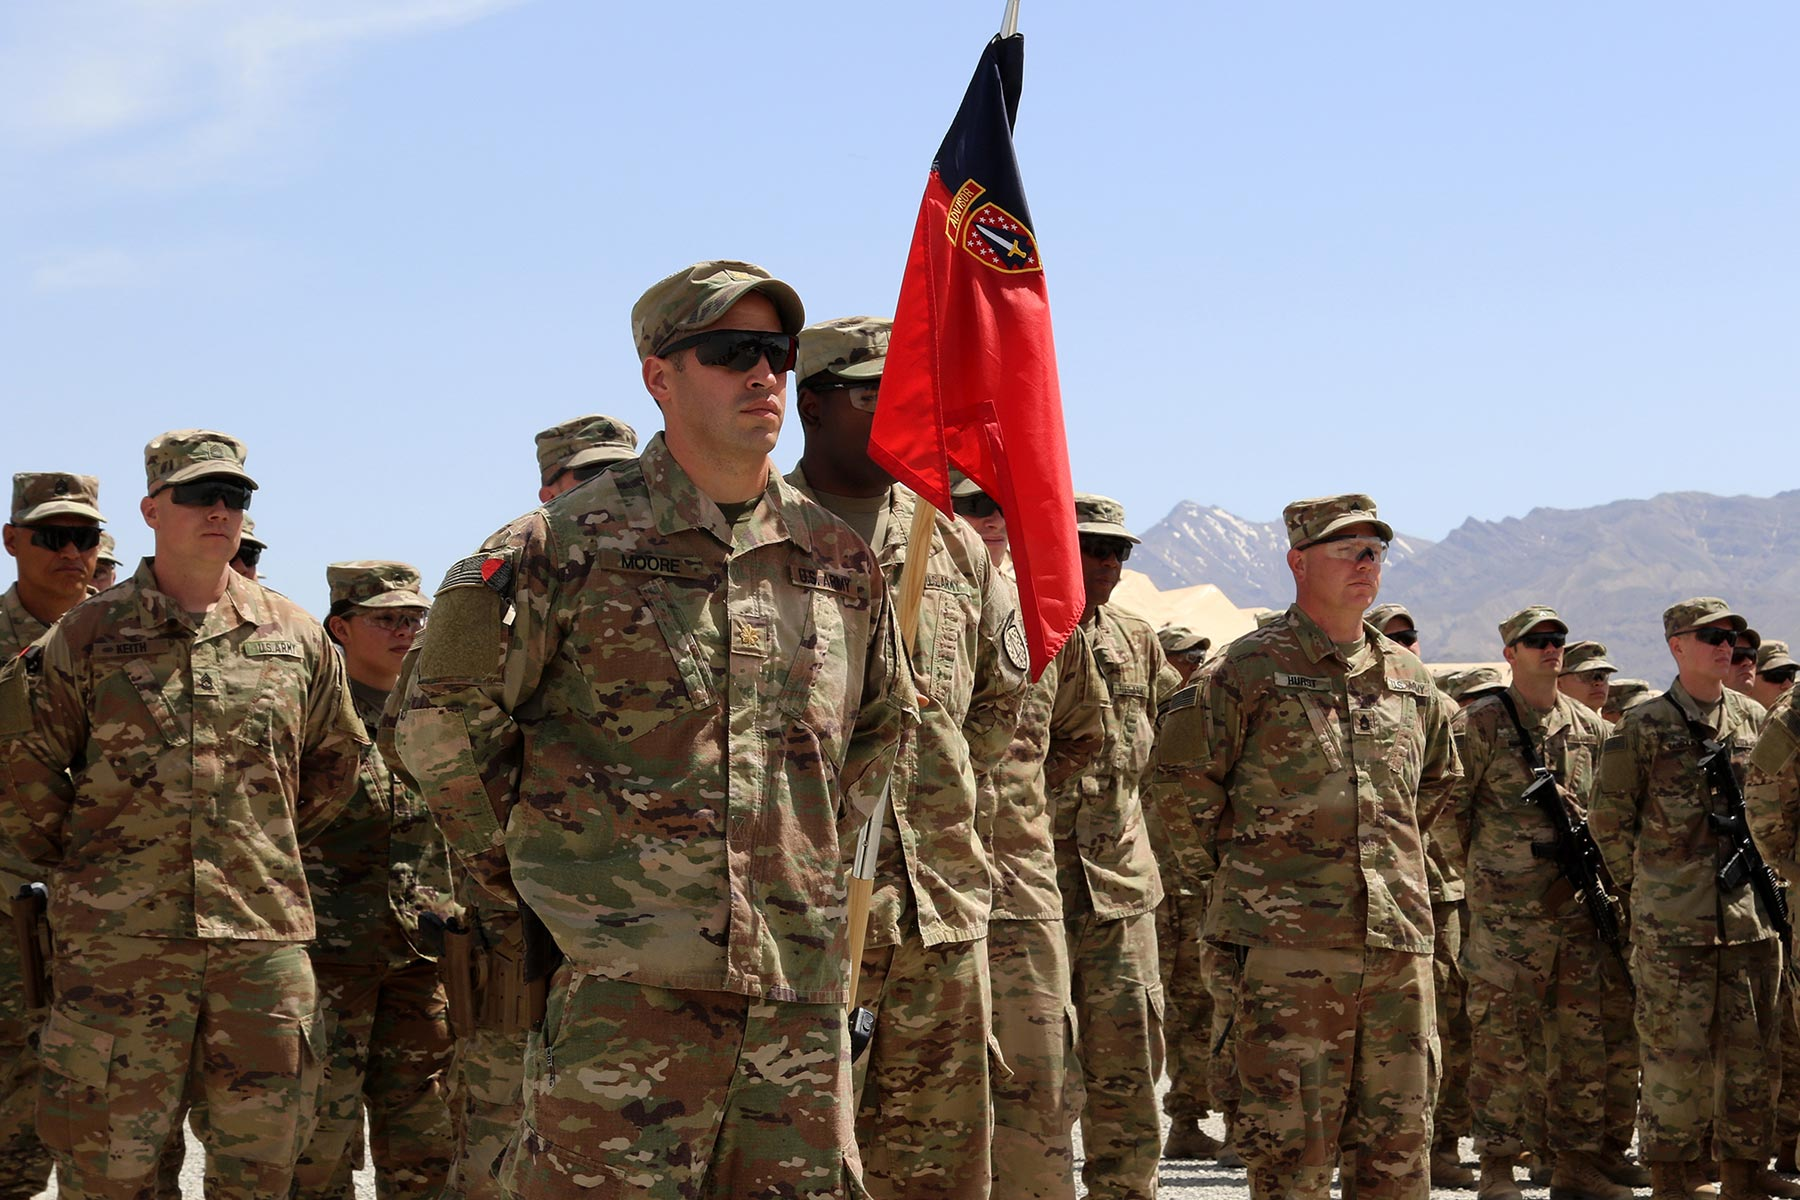 Army Combat Advisers in Afghanistan Already Influencing Fight, CO Says